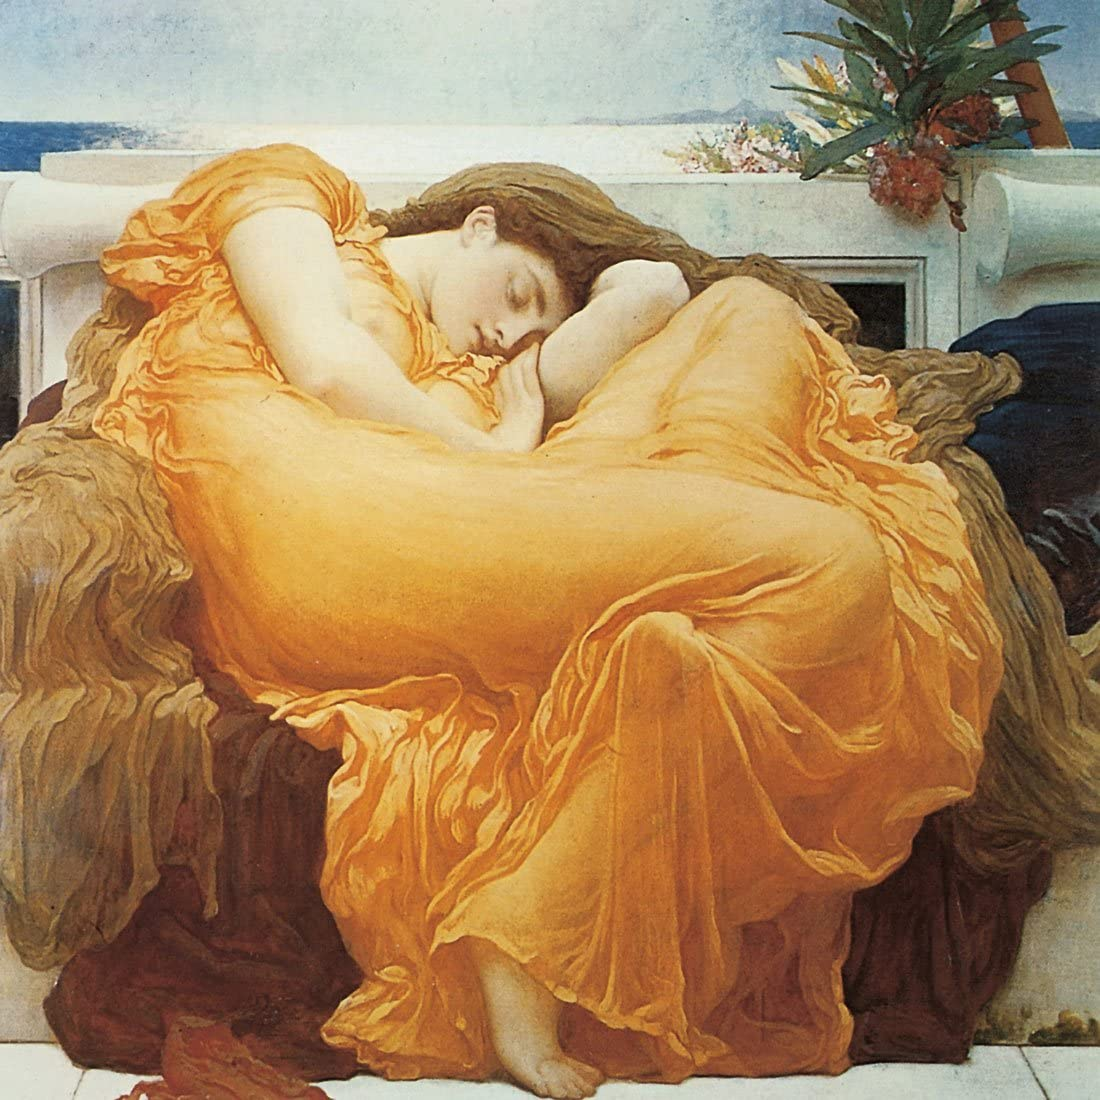 Flaming Dallas Mall June Frederic Leighton sale - ART PRINT WALL CANVAS OR